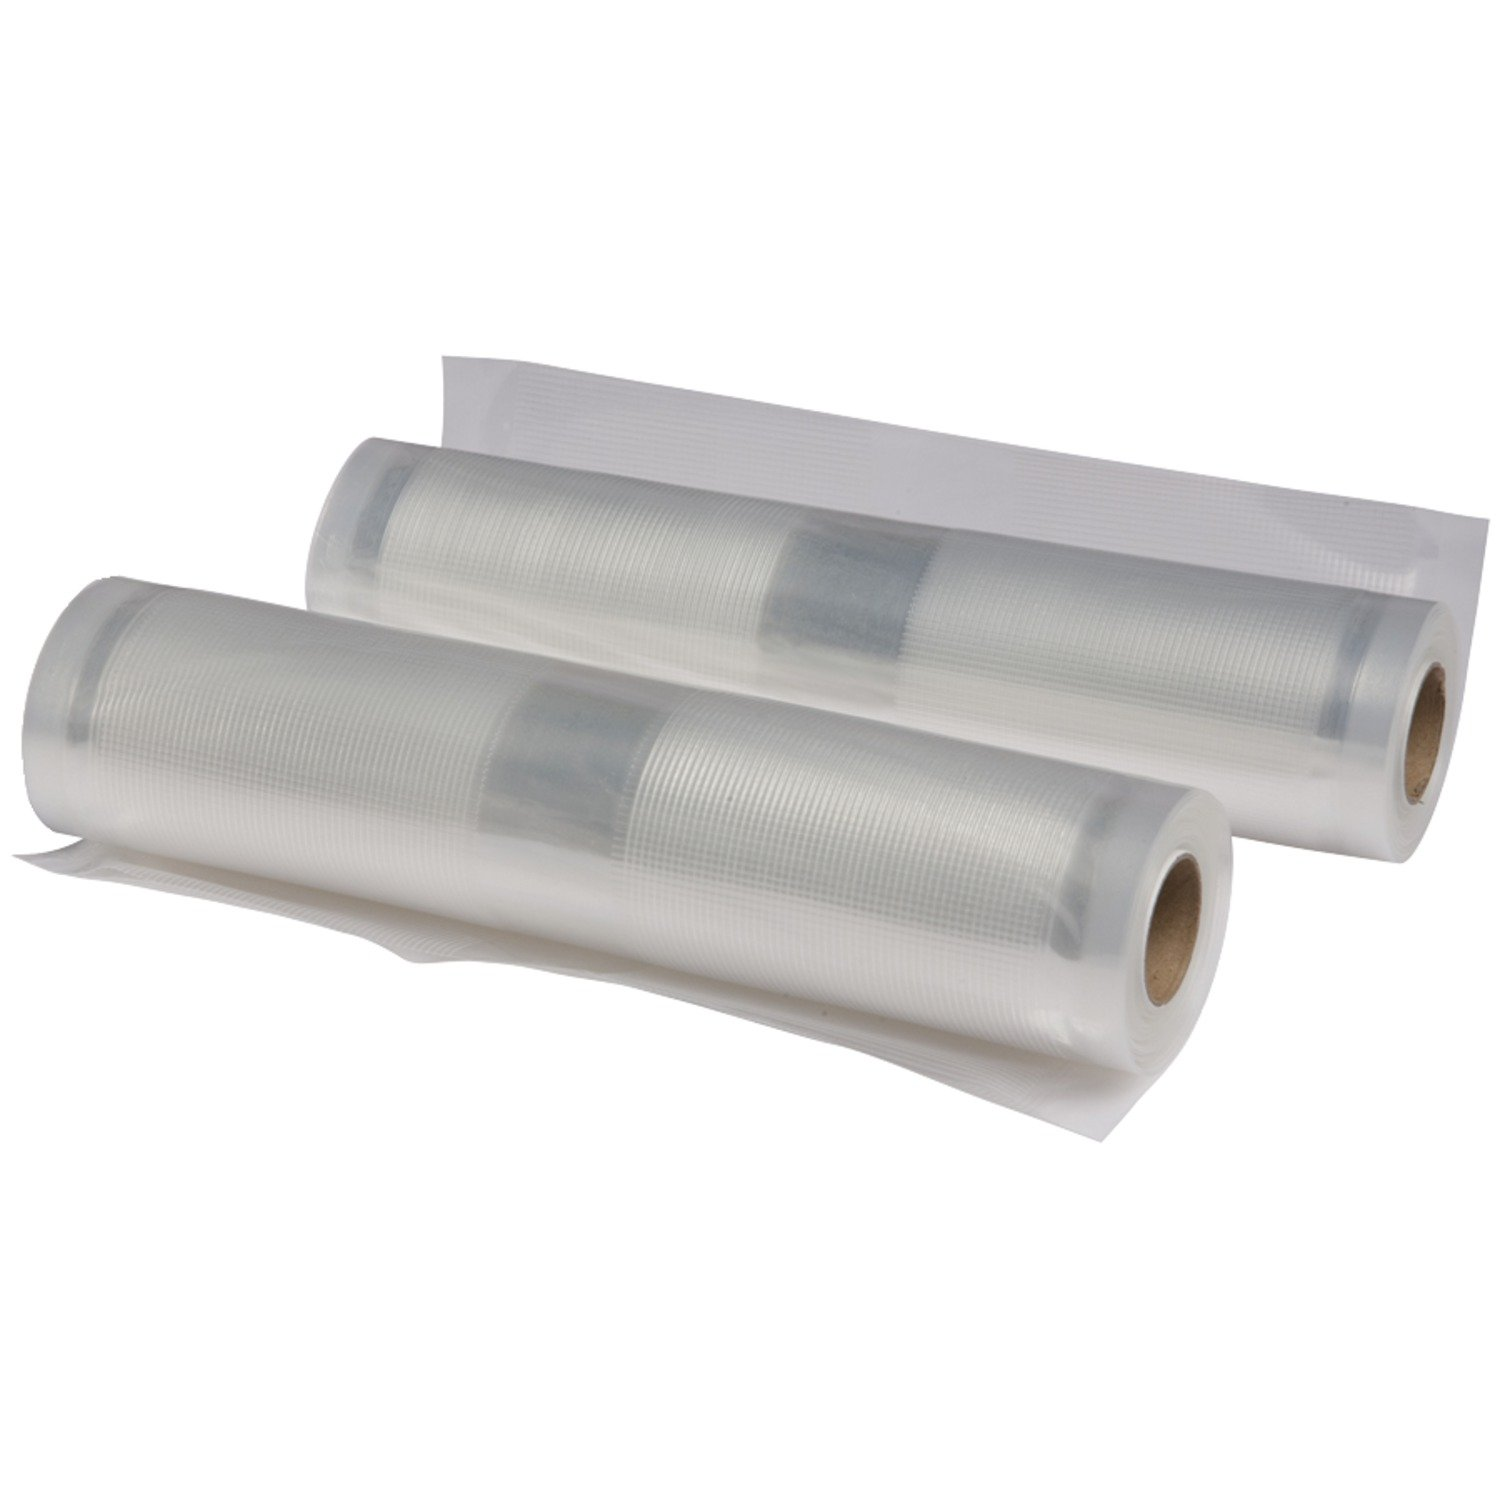 Nesco VS-03R RA26859 Replacement Bag Rolls44 2 Pk (8 X 20&ampquot), 7.87 x 19.69 Clear